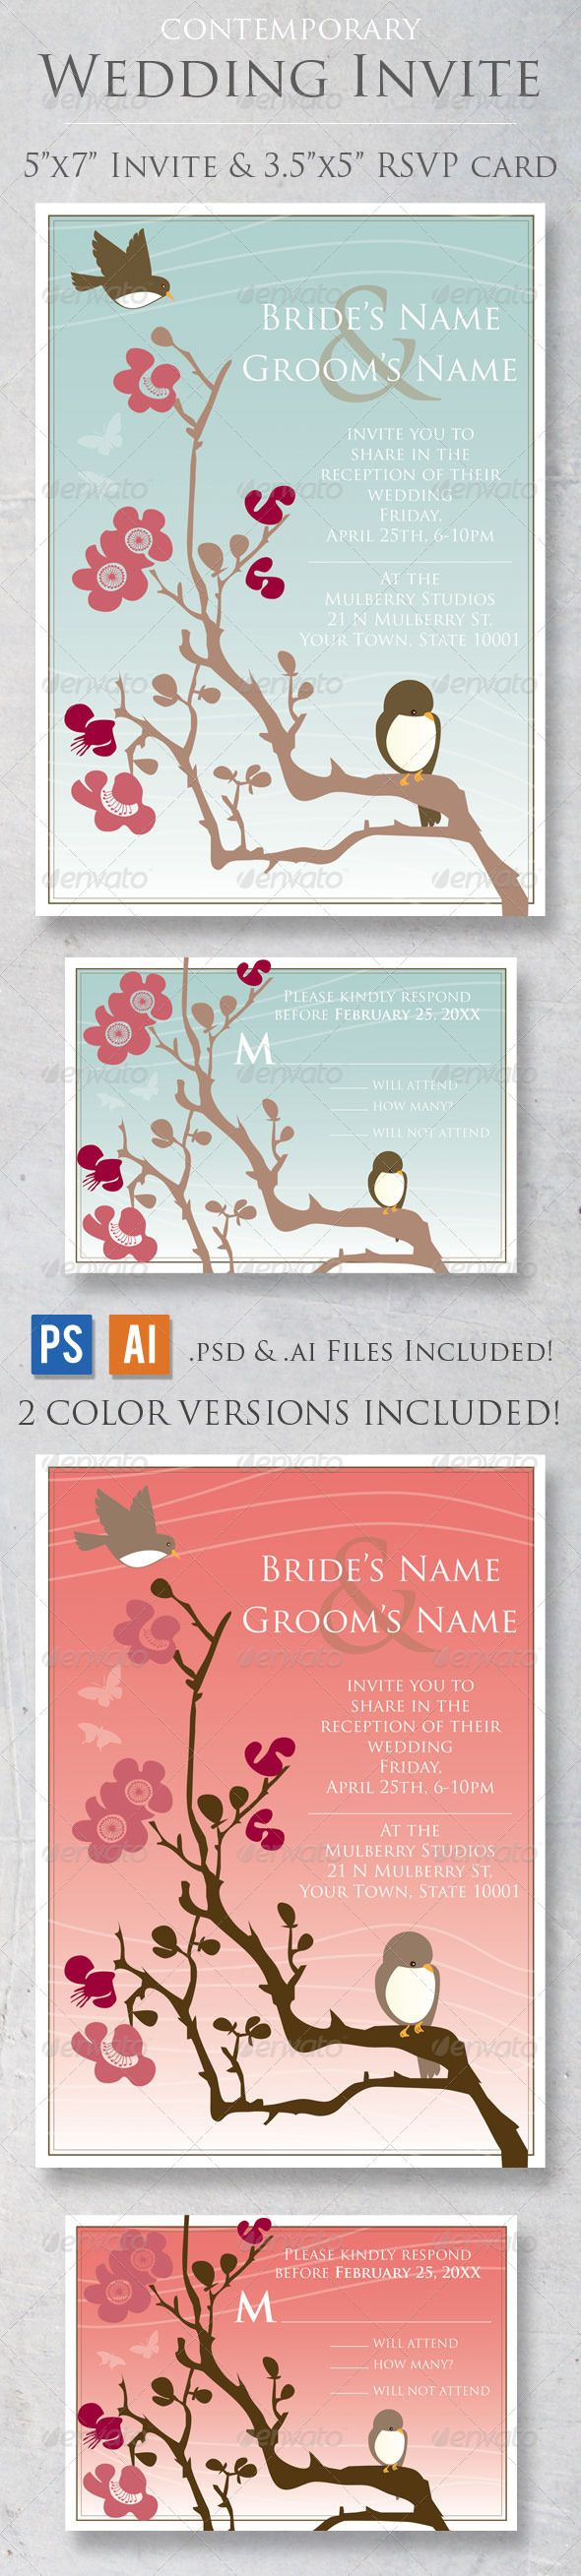 contemporary wedding invitation cards%0A financial analyst sample resume